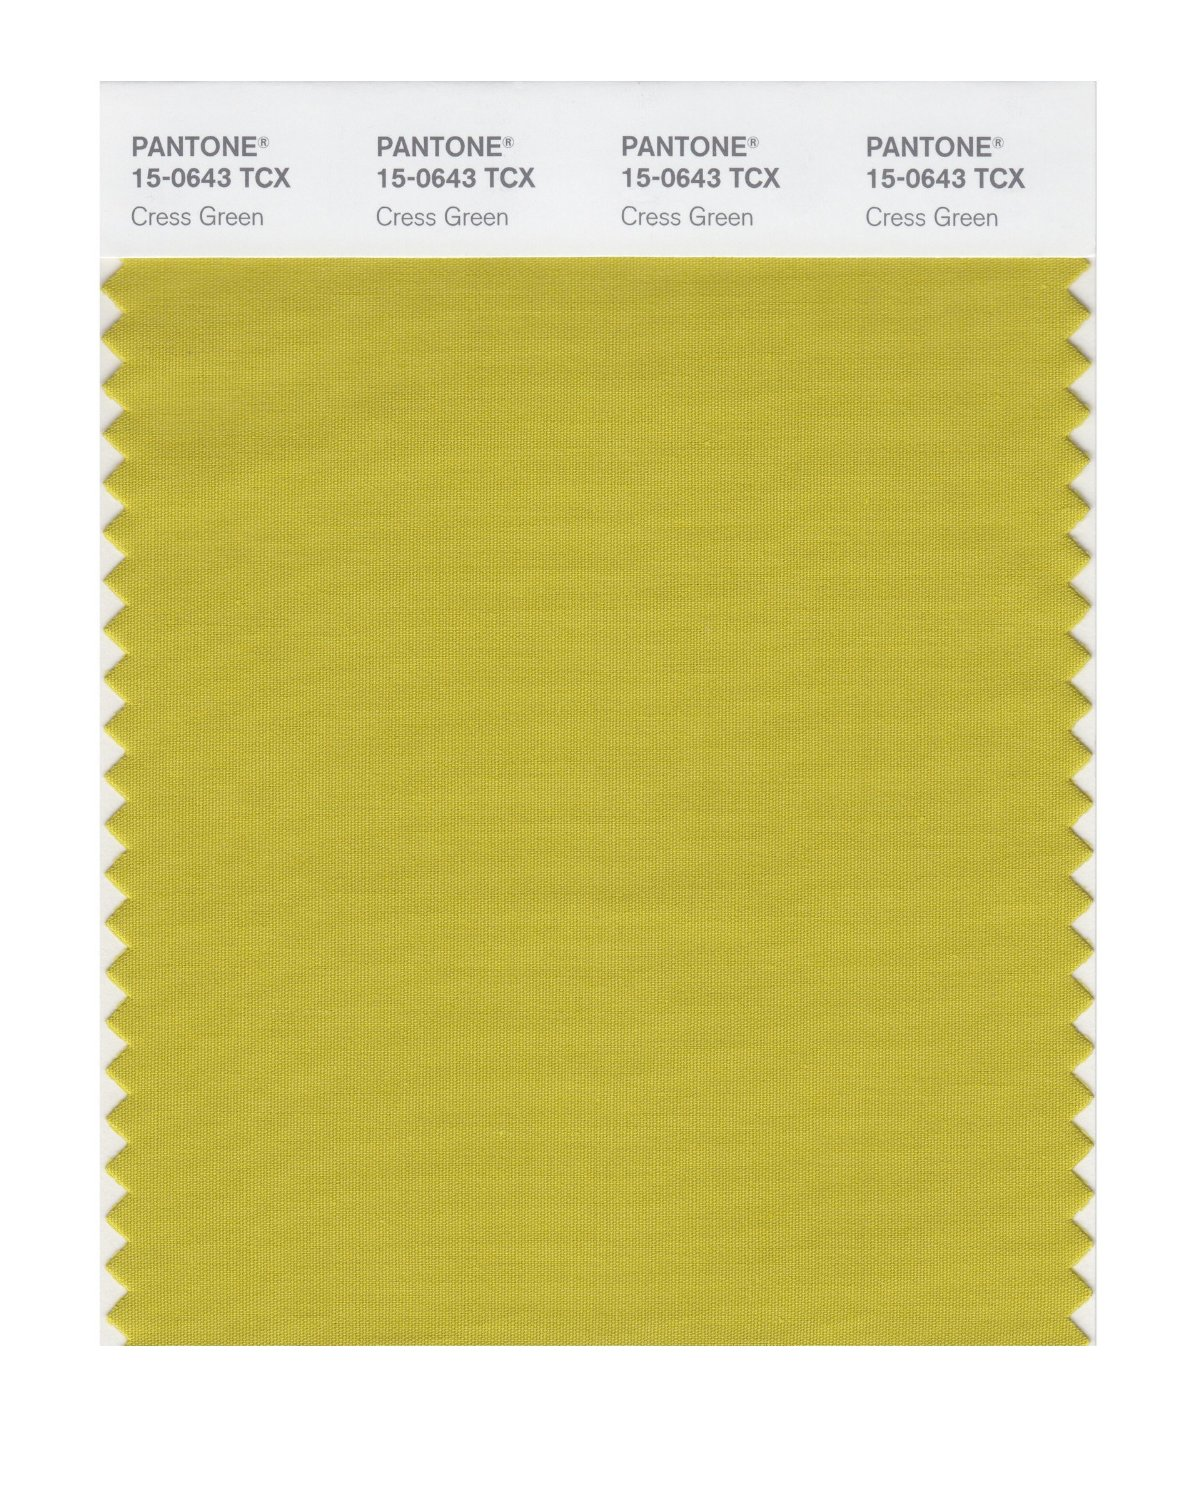 Pantone Smart Swatch 15-0643 Cress Green